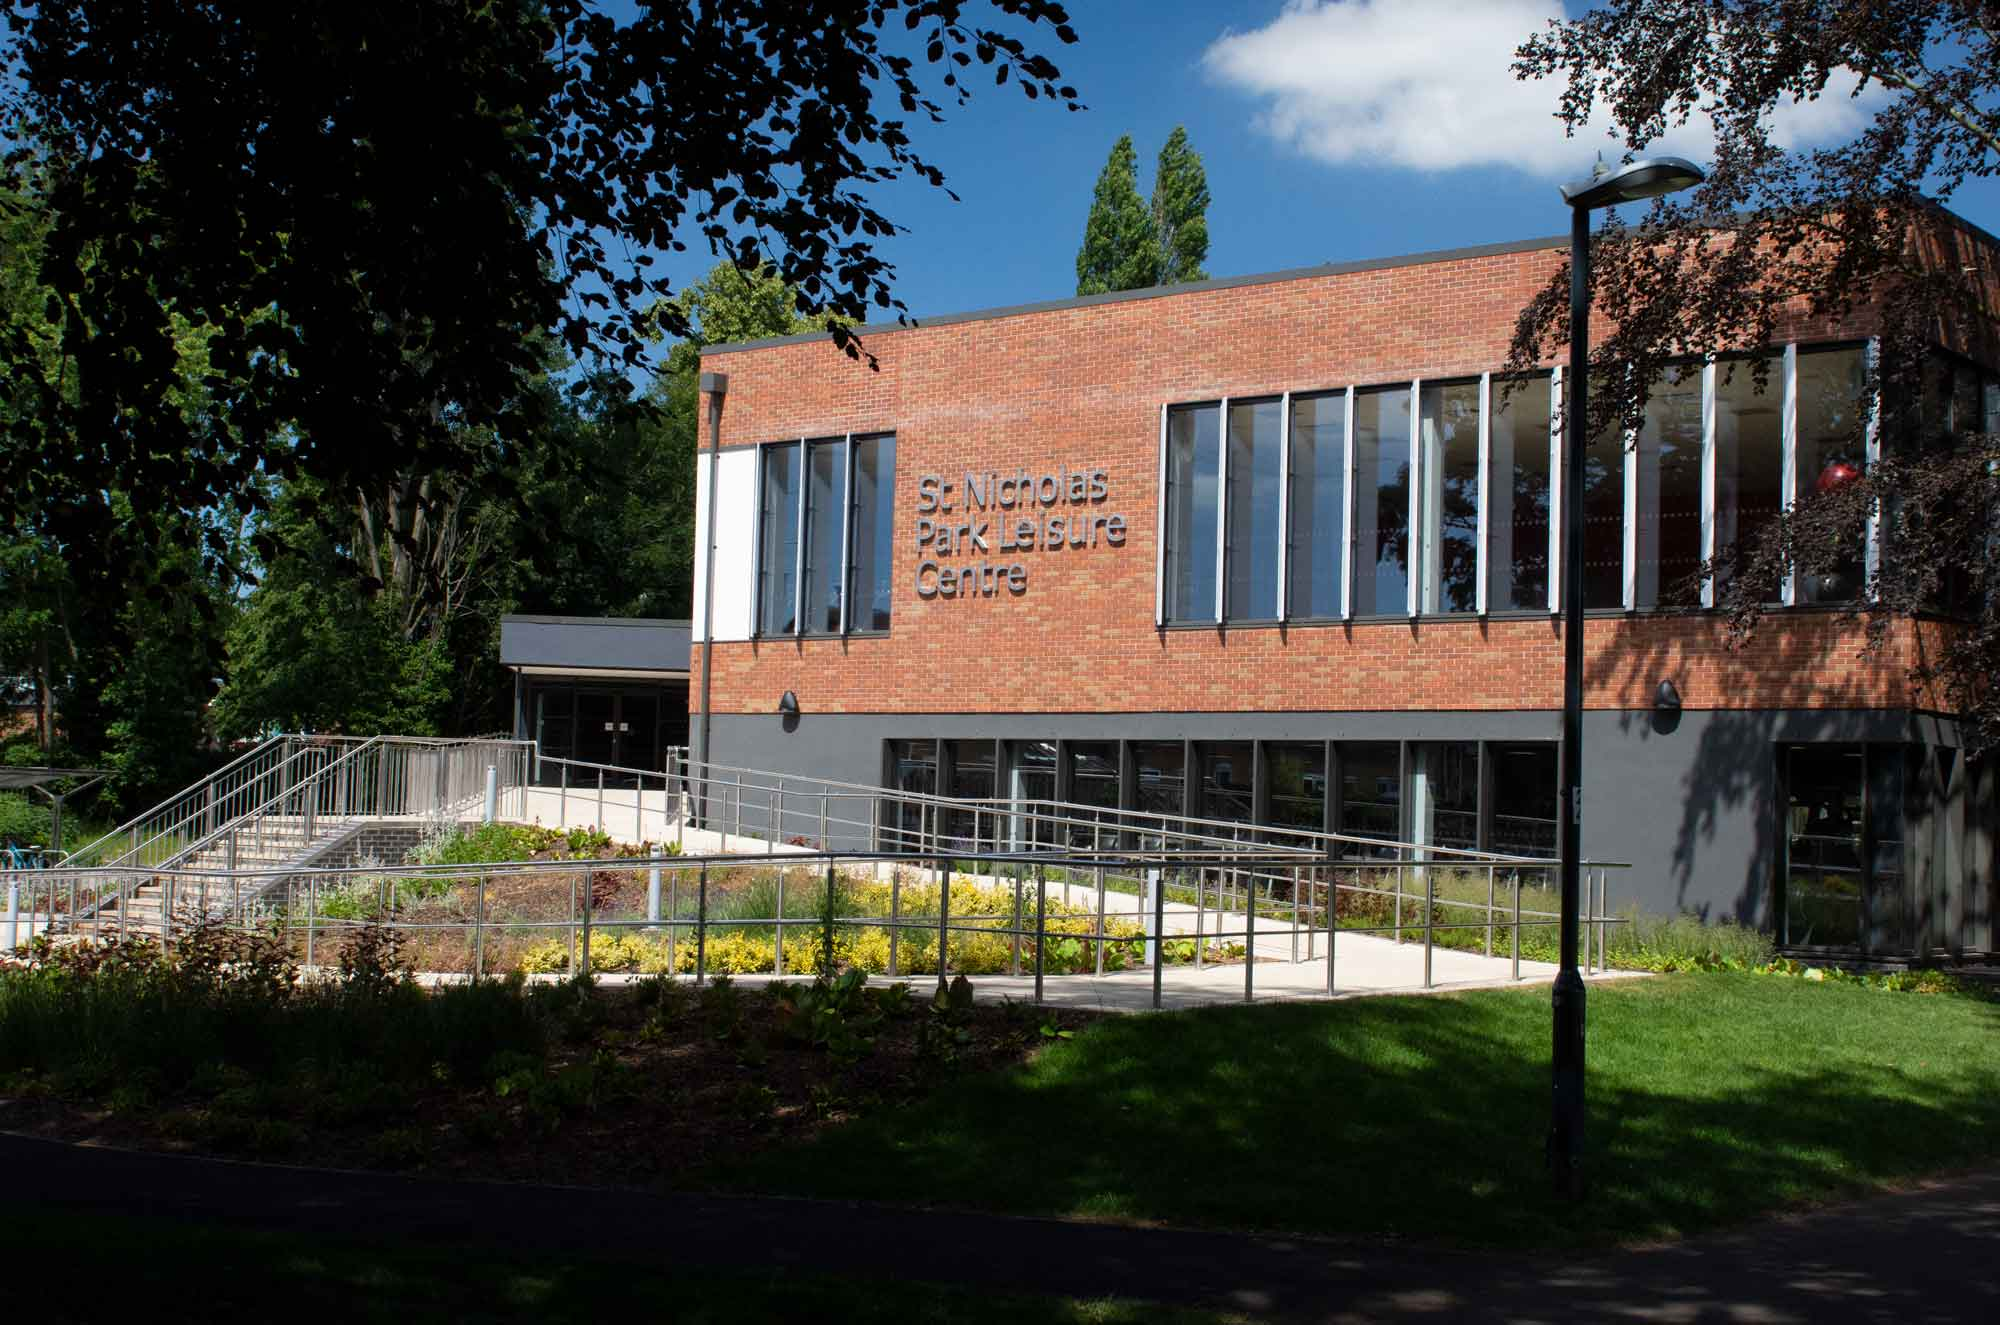 St Nicholas Park Leisure Centre - J A Burke Construction Limited - Midlands based ground works, civils and RC frame company.